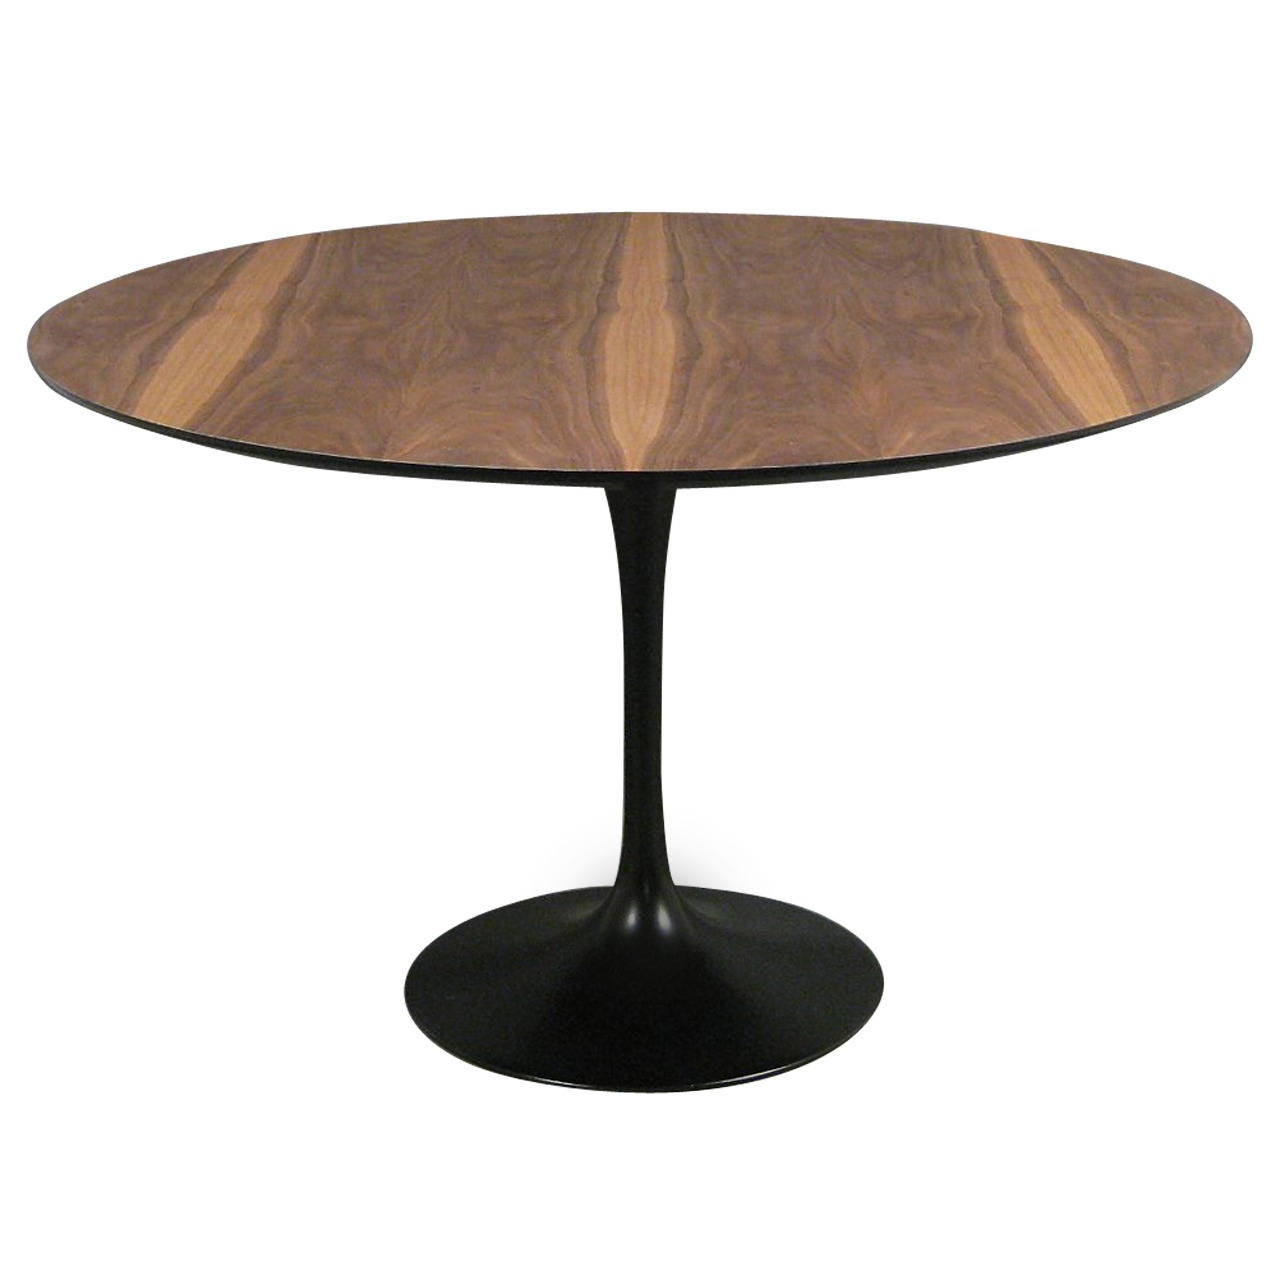 Eero saarinen tulip dining table by knoll at 1stdibs for Tulip dining table